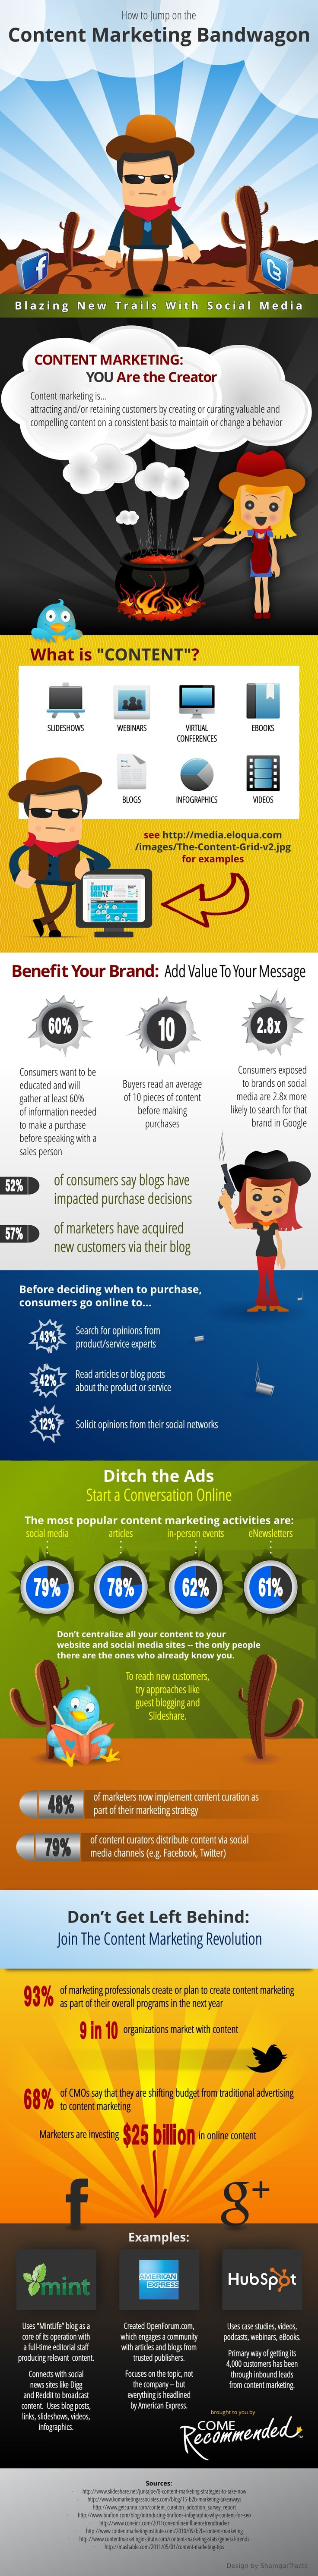 How to Jump on the Content Marketing Bandwagon: Infographic Marketing, Social Media, Contentmarketing Strategies, Contentmarketing Bandwagon, Content Marketing, Business Marketing